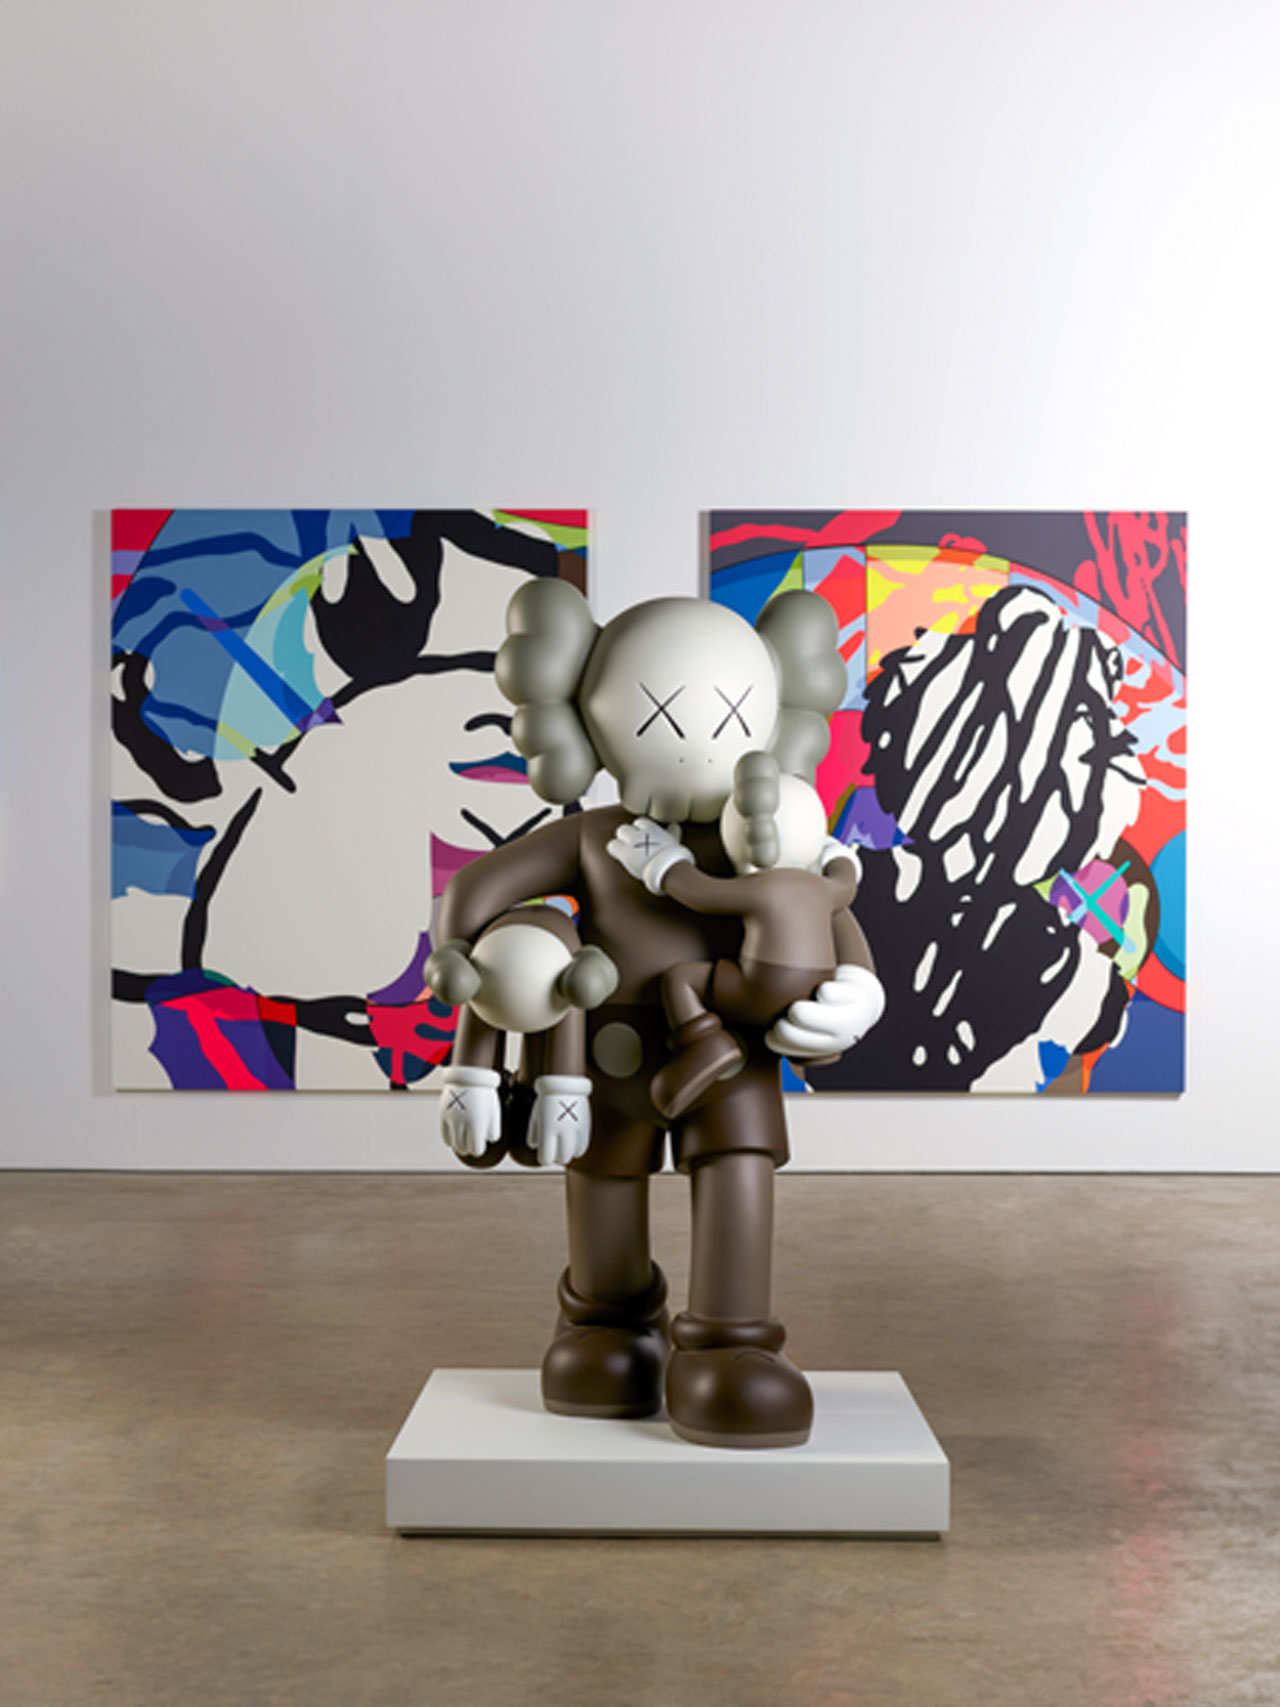 F Kaws At Yorkshire Sculpture Park Clean Slate Survival Machine Photo Jonty Wilde Yatzer